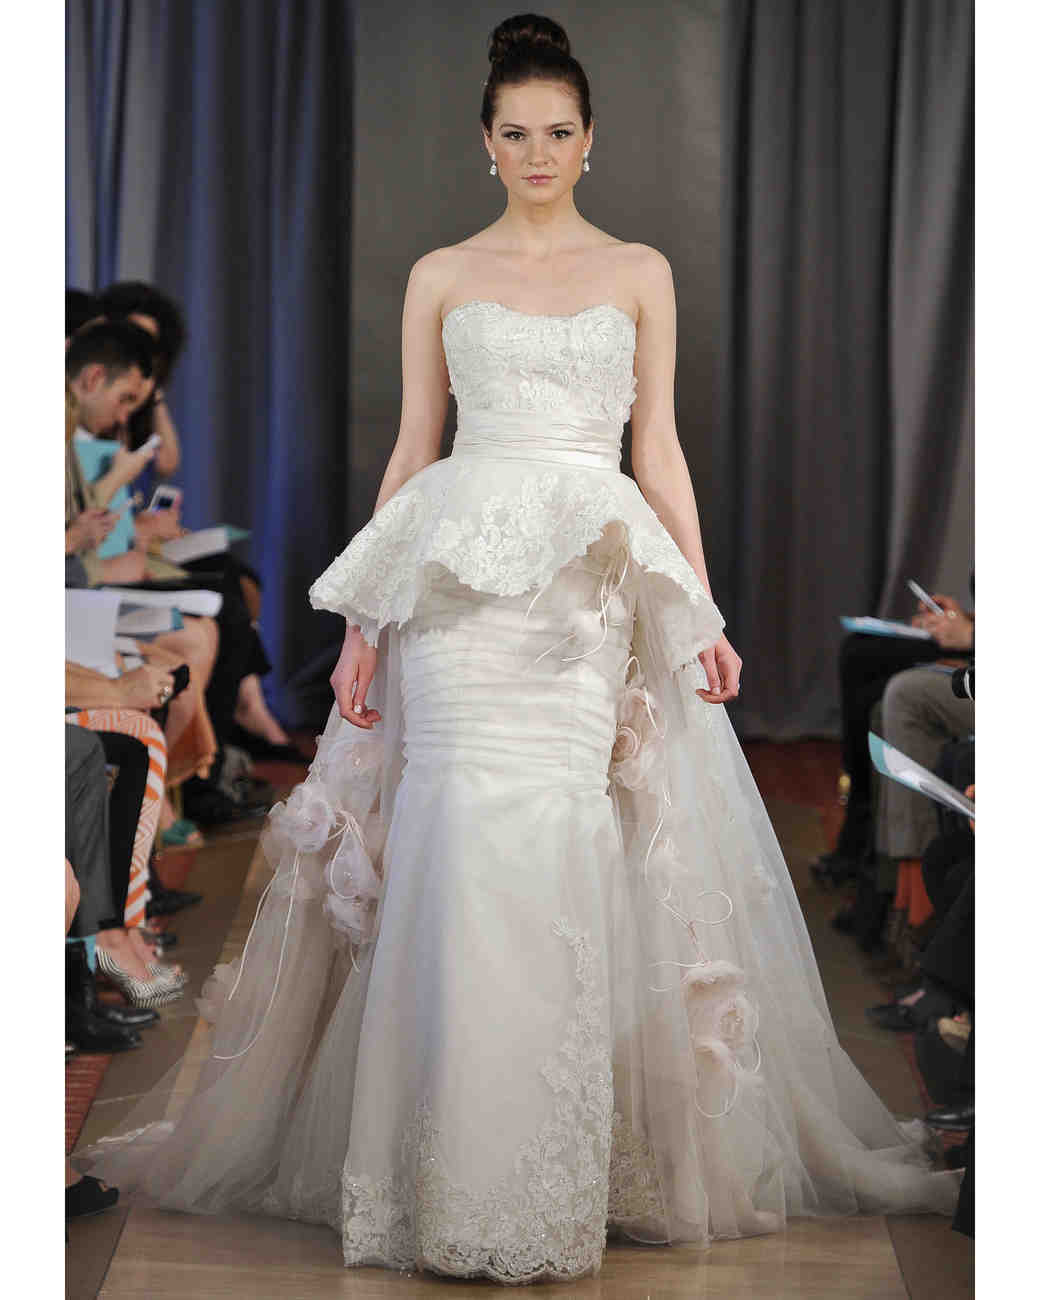 Peplum Wedding Dresses, Spring 2013 Bridal Fashion Week | Martha ...